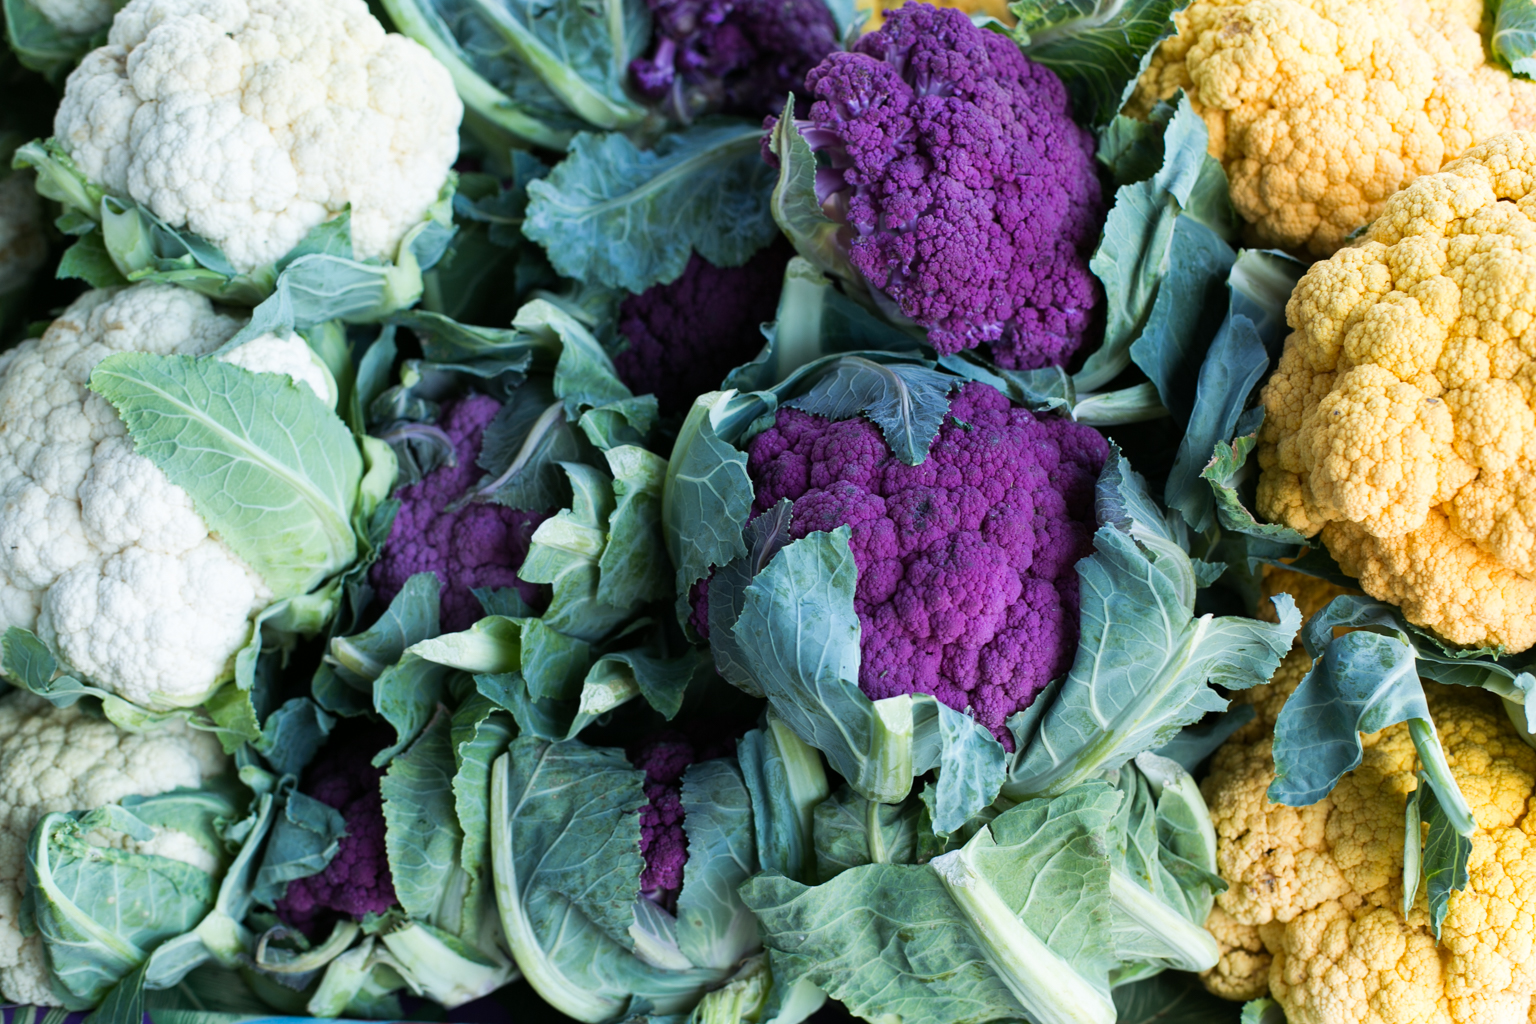 A rainbow of cauliflower for sale at the market.